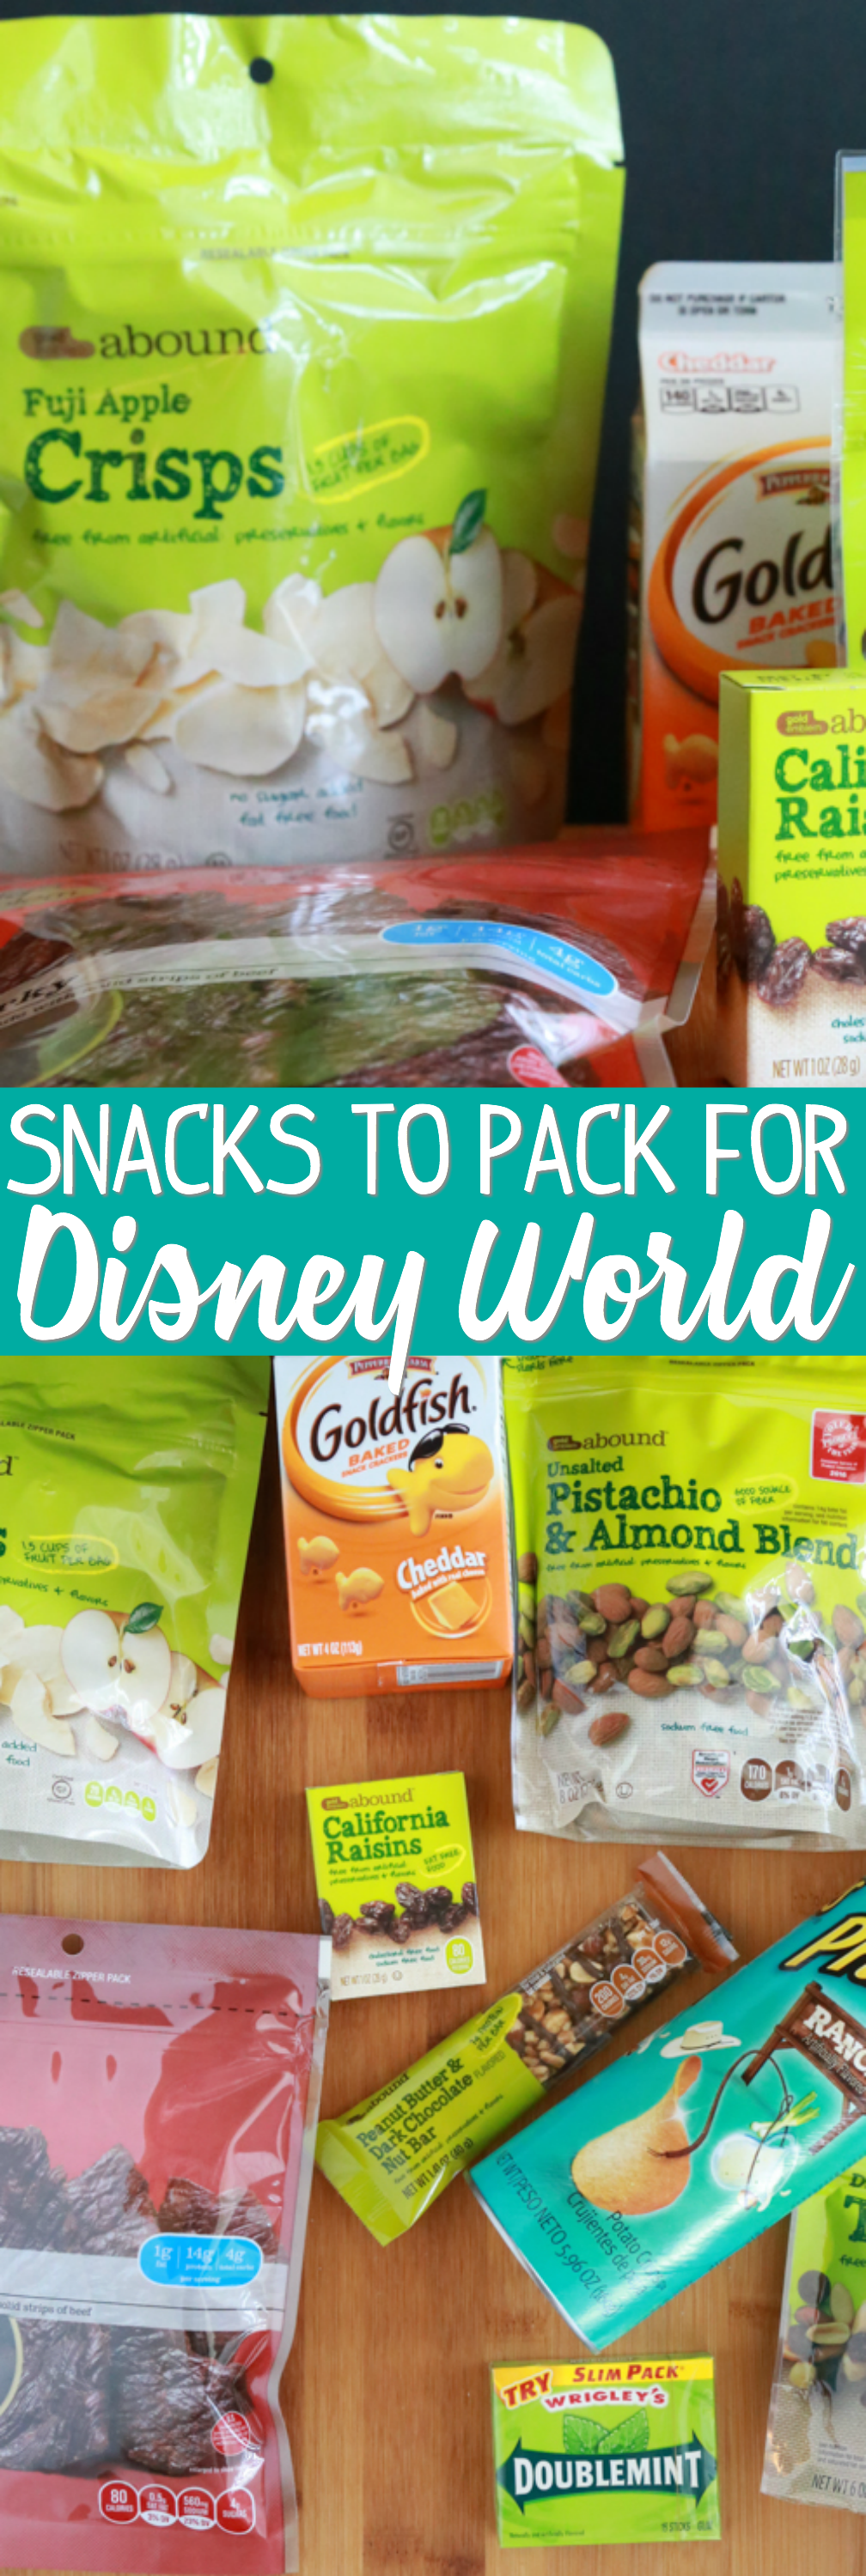 snack ideas for disney world